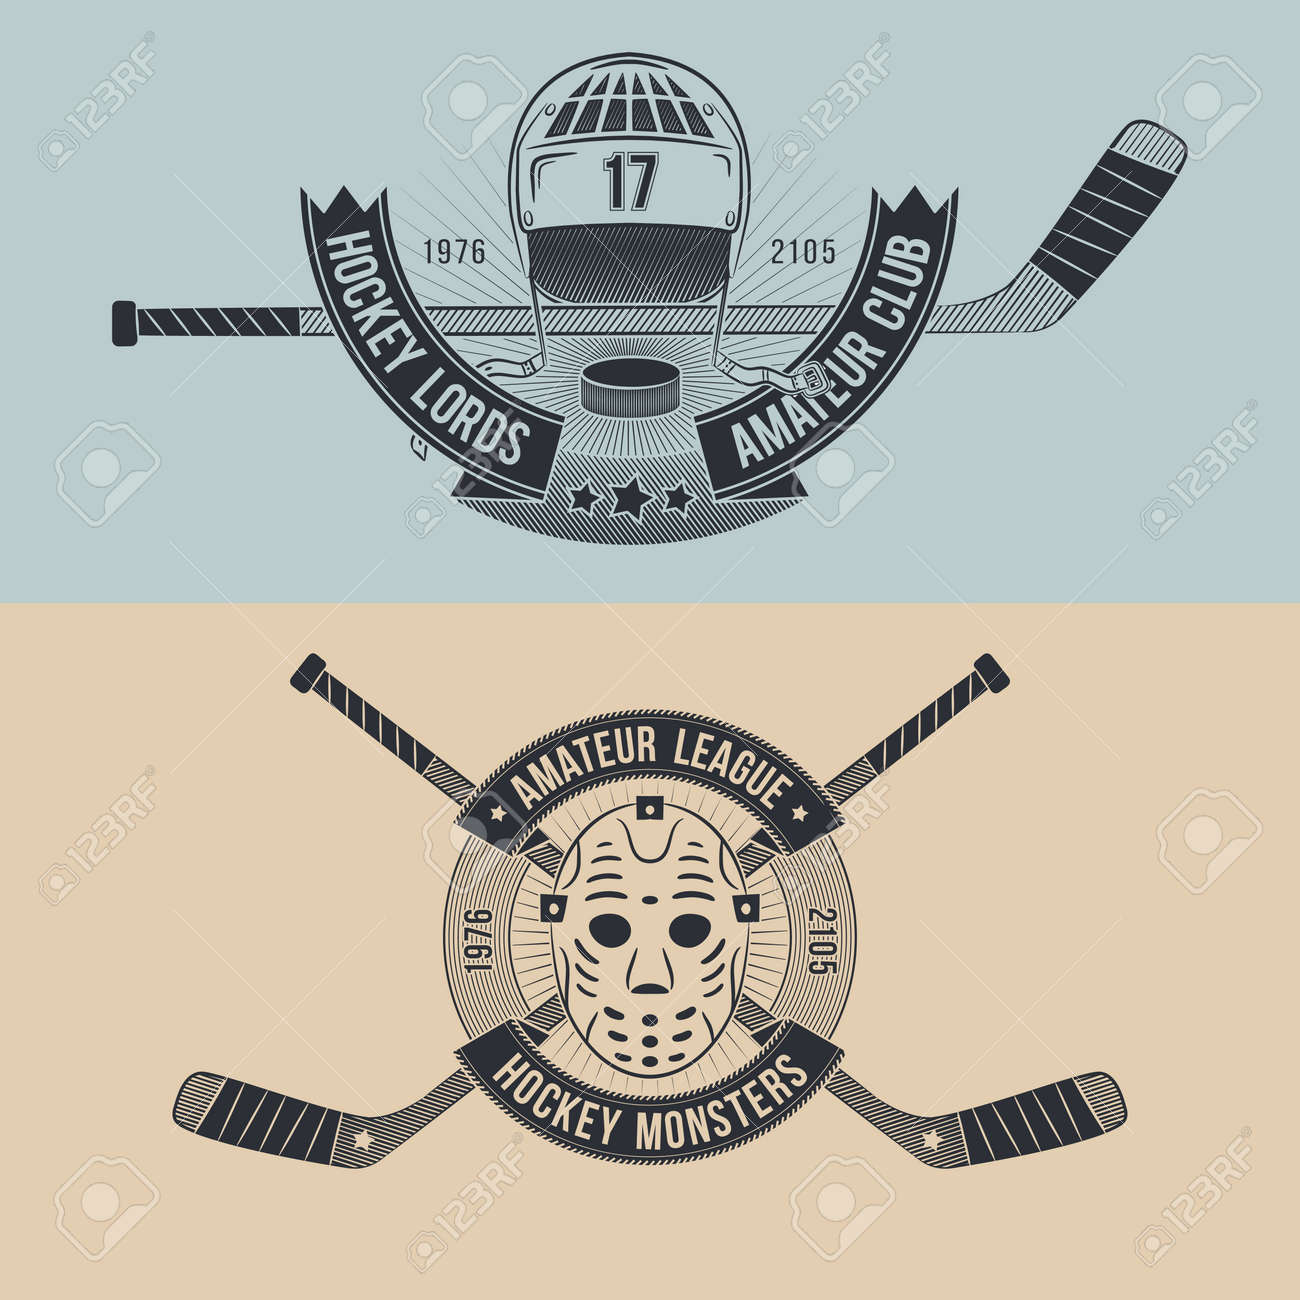 Hockey Logos Logos For The Hockey Team Or League Hockey Logo In The Style